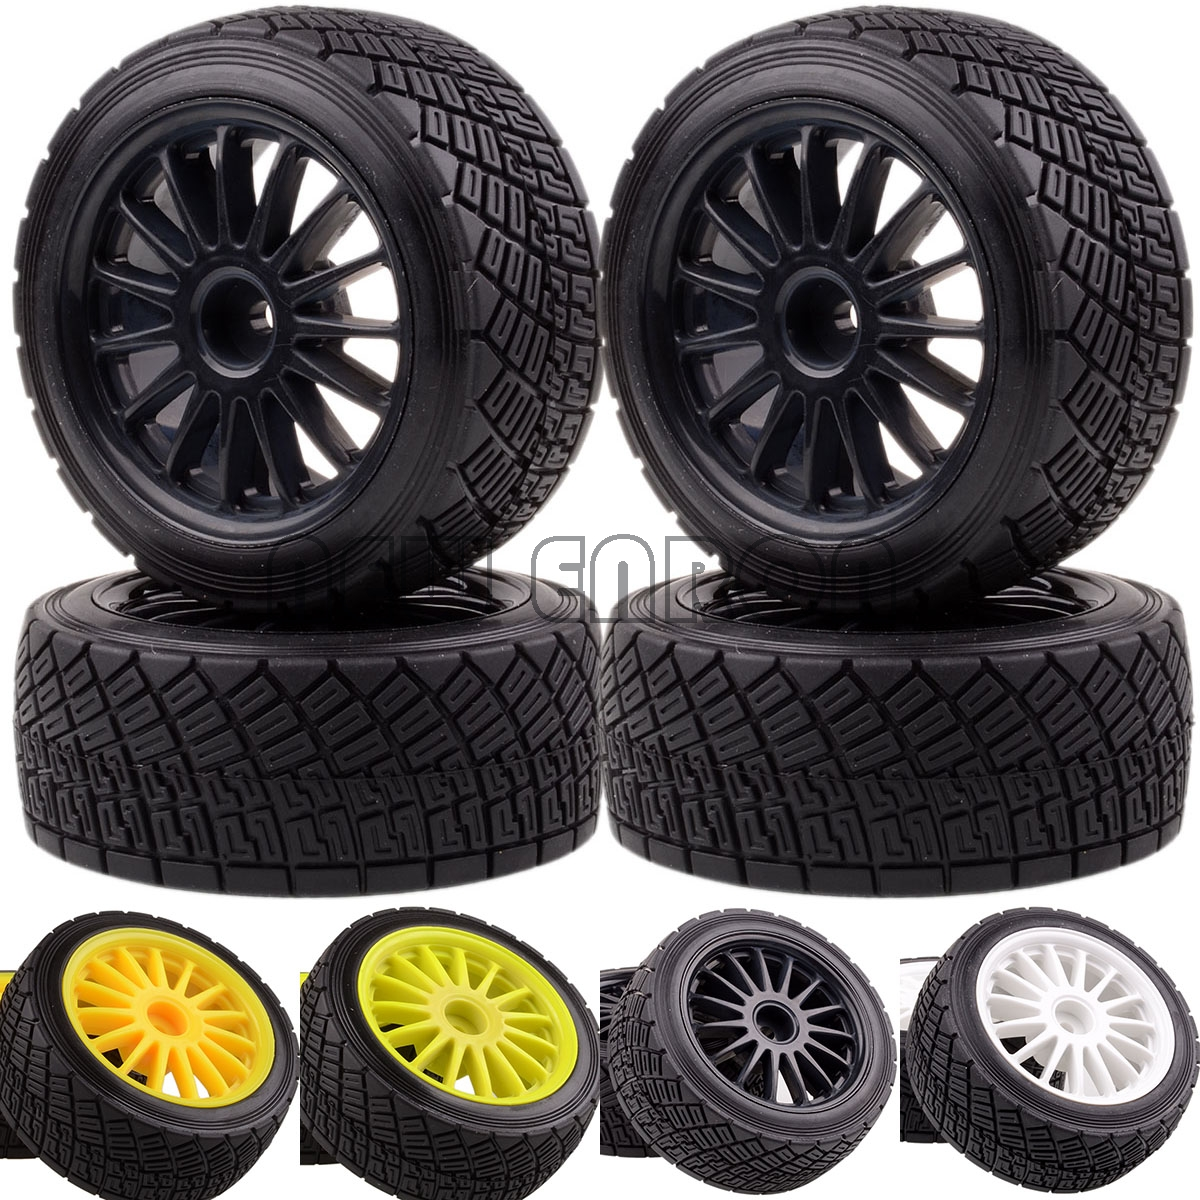 NEW ENRON 4PCS <font><b>2.2</b></font> Inch Wheel Rims Hub & <font><b>Tires</b></font> Tyre RC CAR PART RC CAR 1/10 Fit 1:10 HPI WR8 Flux Rally 3.0 110697 94177 image